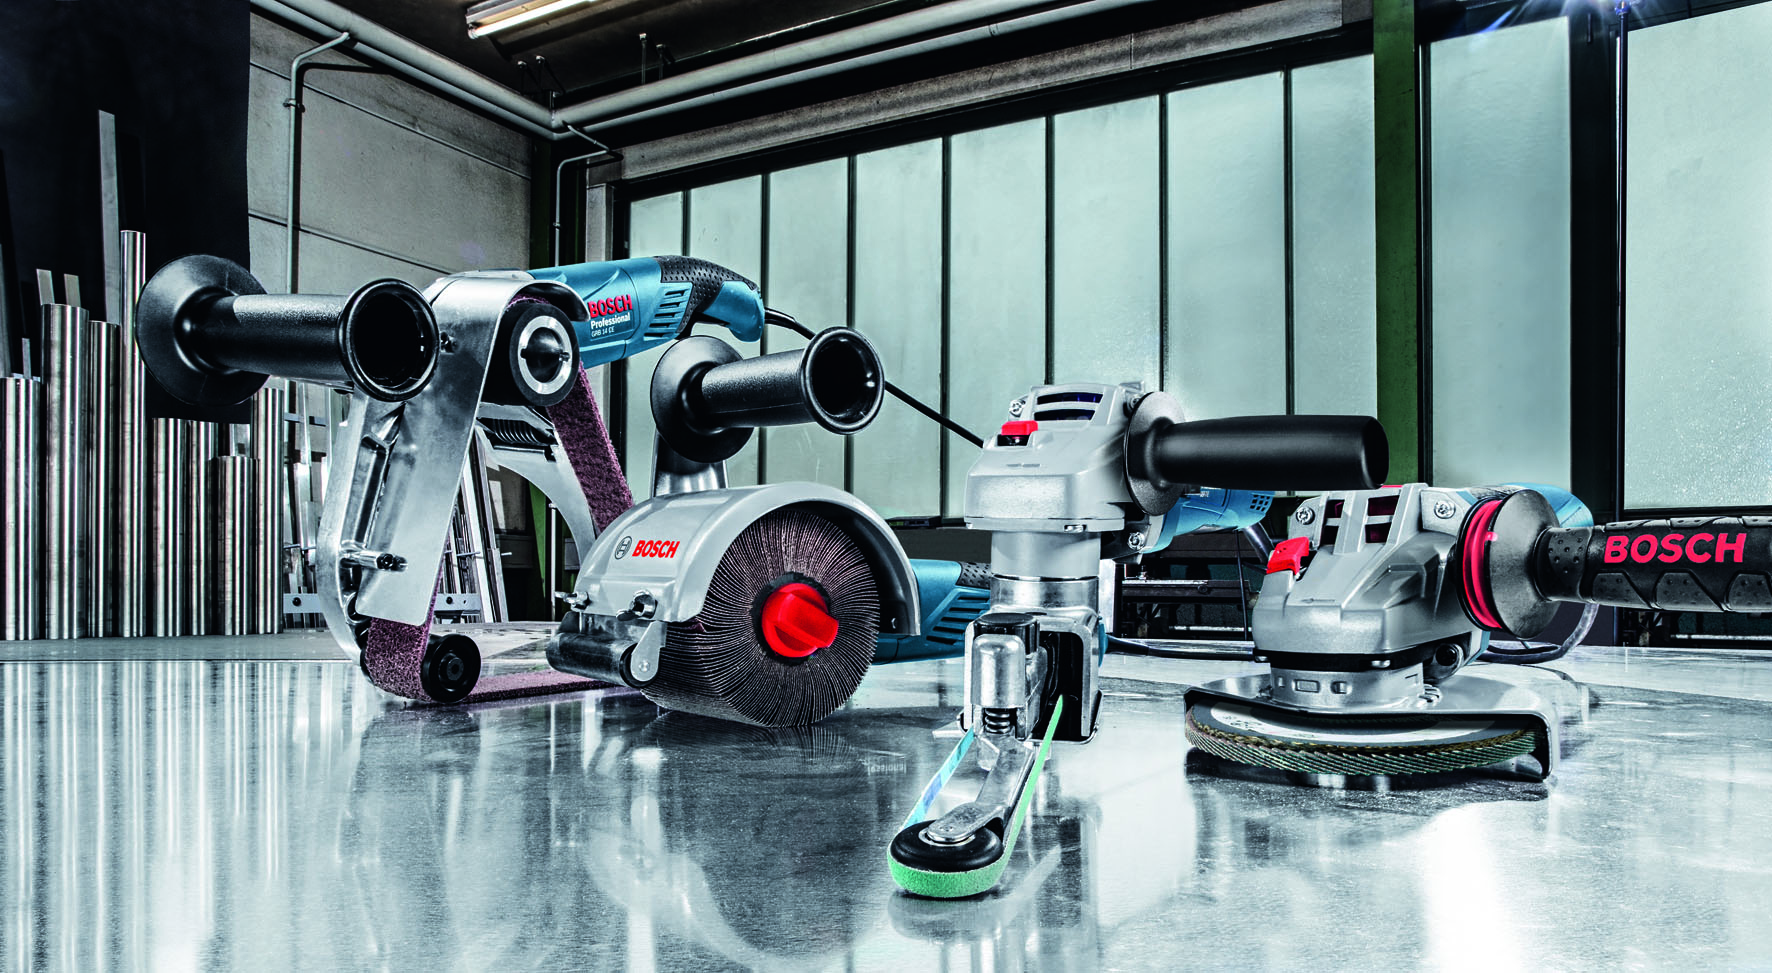 Power Tools Innovation Portal Help To Actively Shape The Innovation Process At Bosch We Look Forward To Your Suggestions Go To Innovation Portal